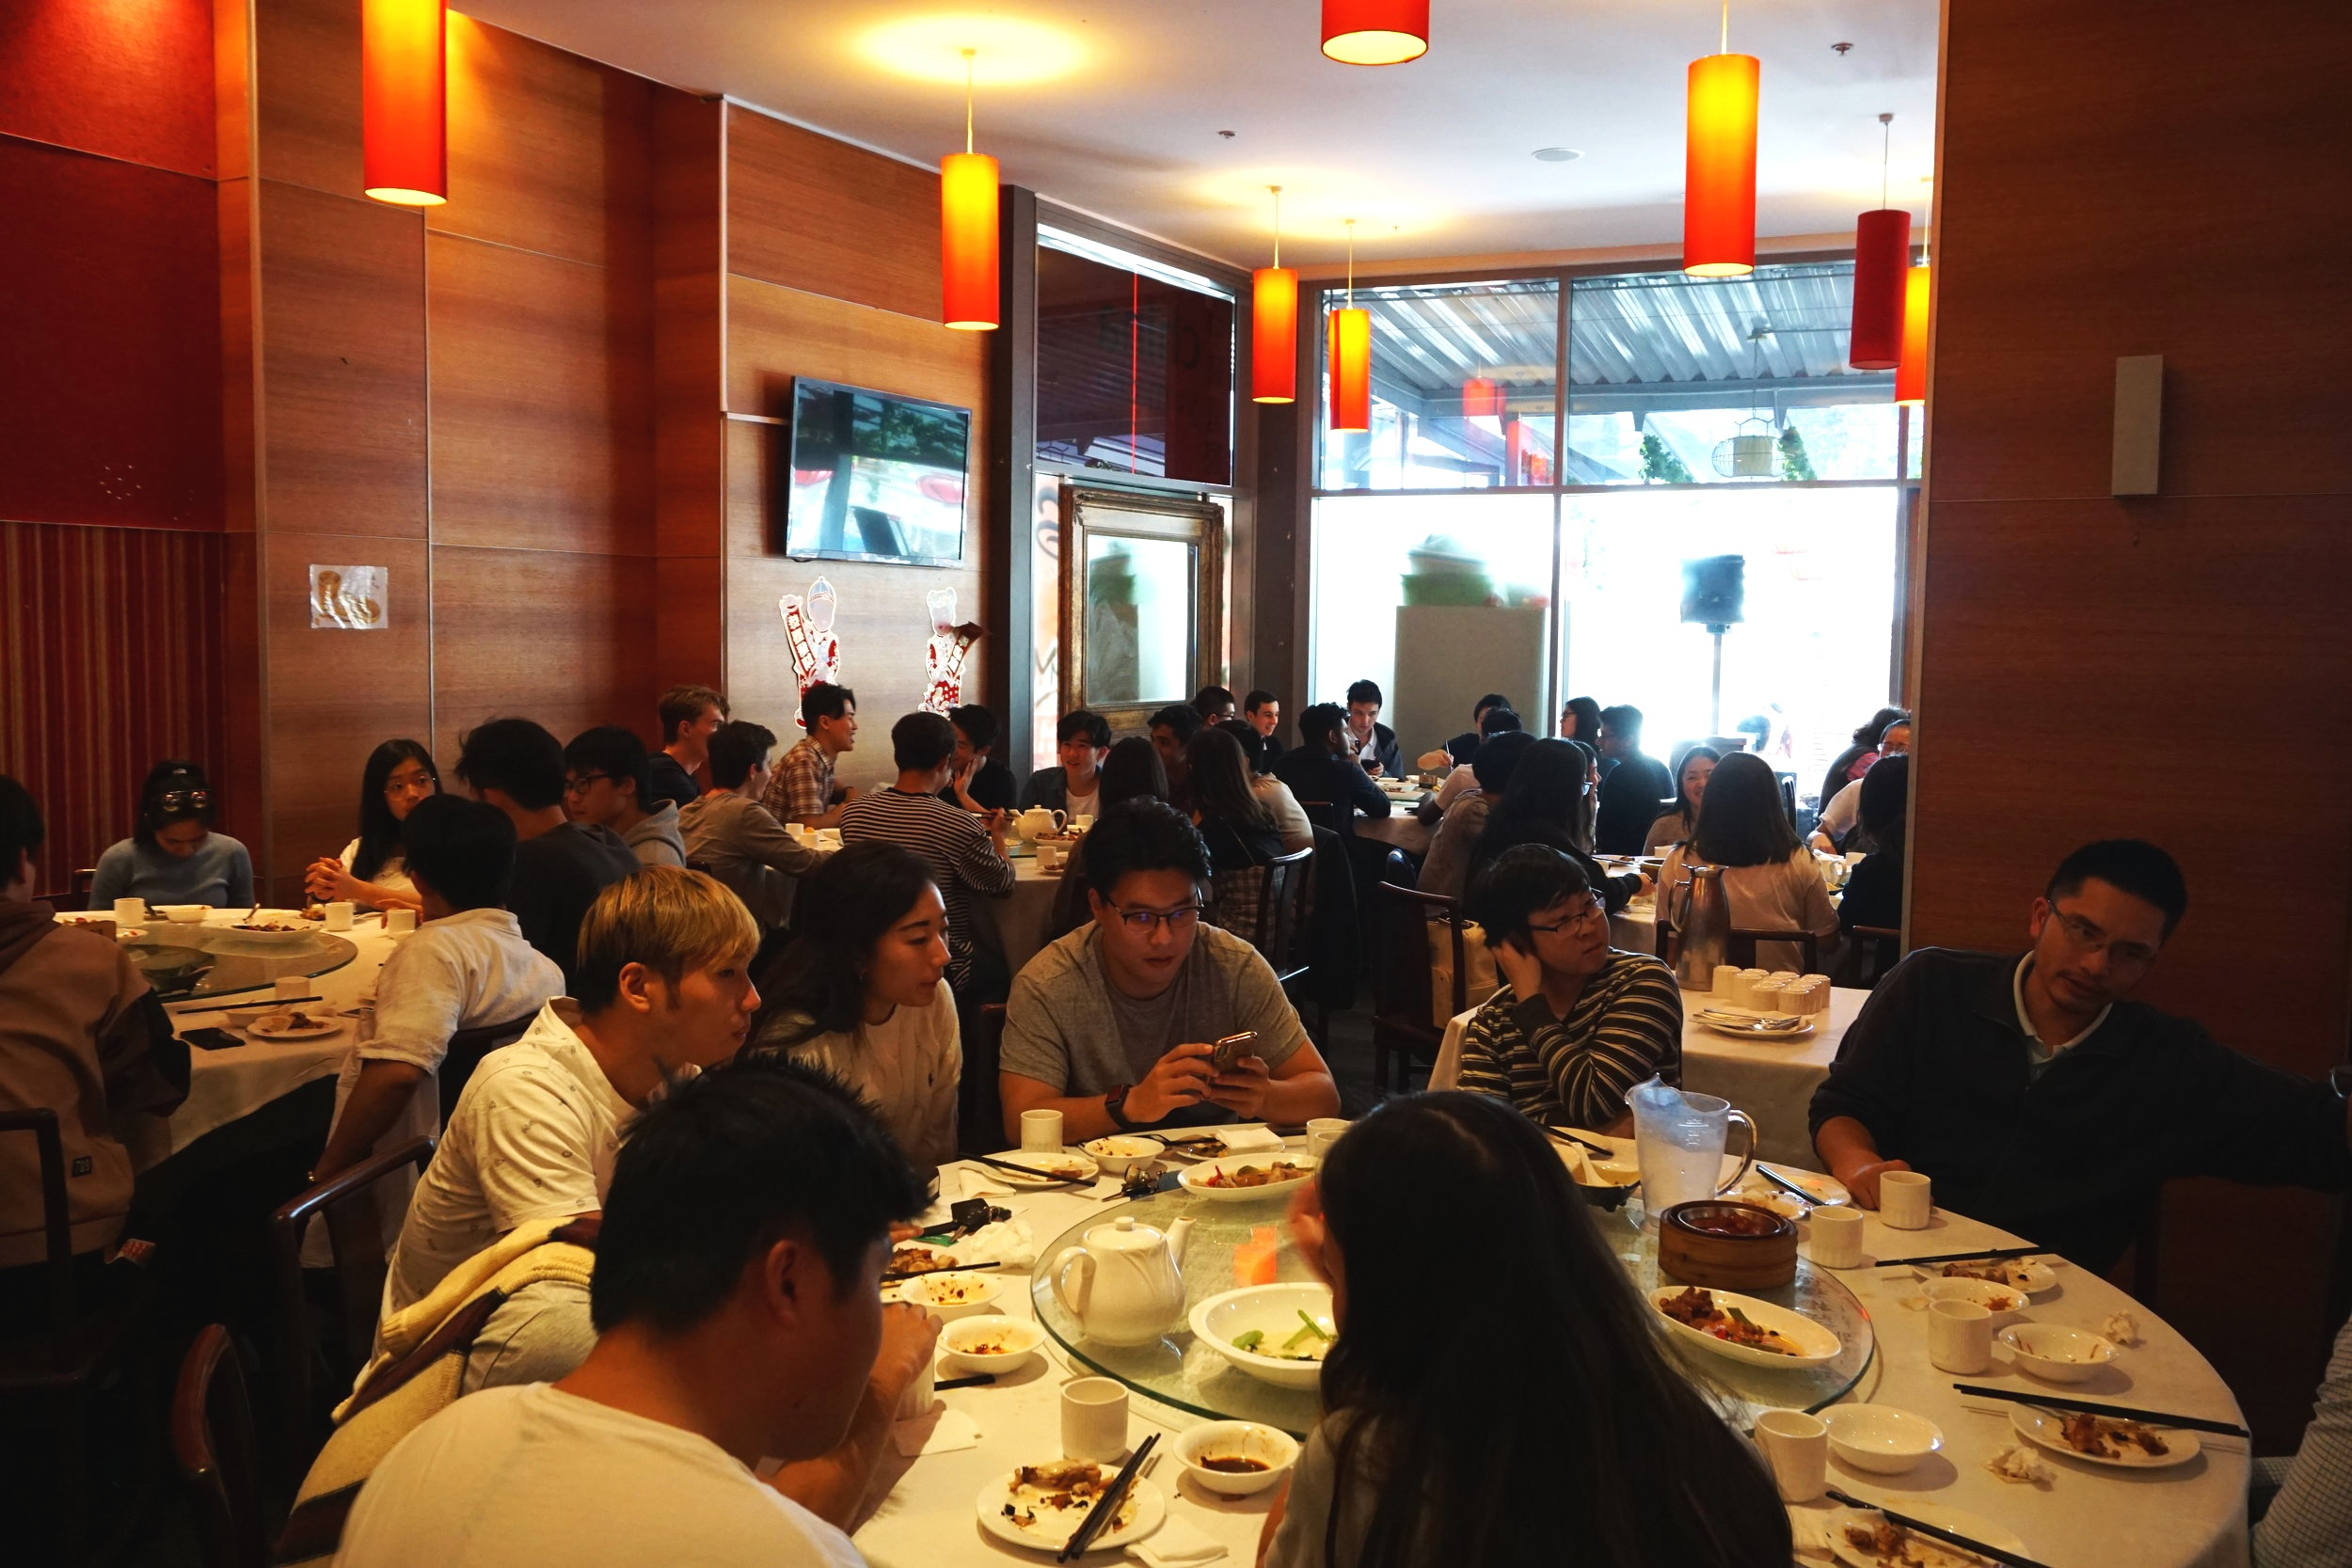 YACMA Yumcha - Sat 13 April 2019China Yum Char Restaurant